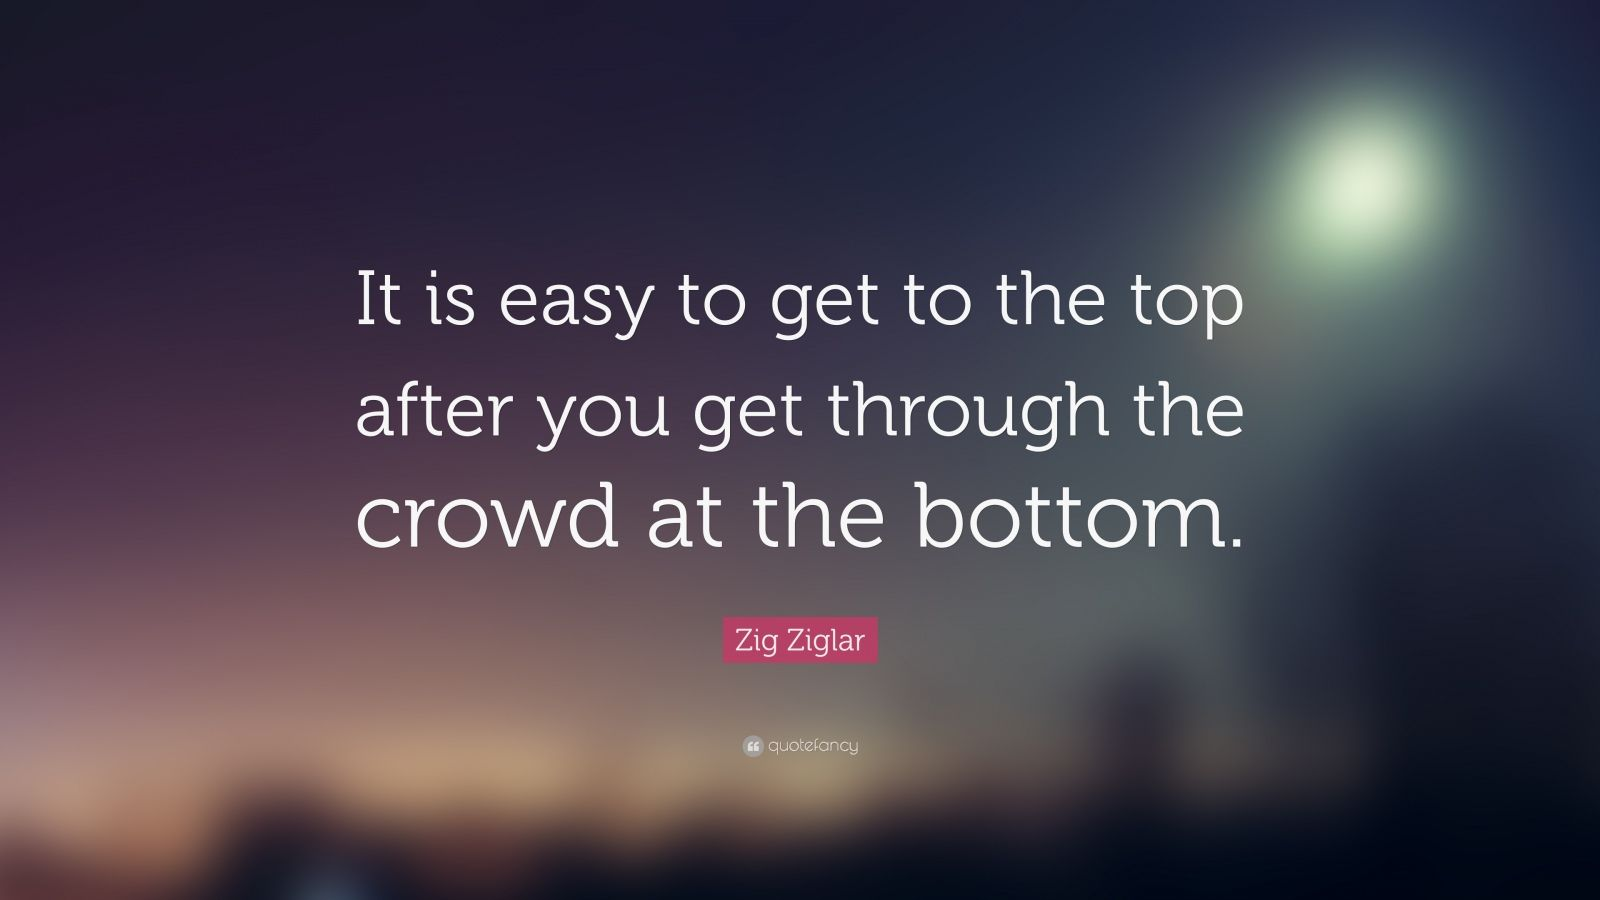 """Zig Ziglar Quote: """"It is easy to get to the top after you get through the crowd at the bottom."""""""